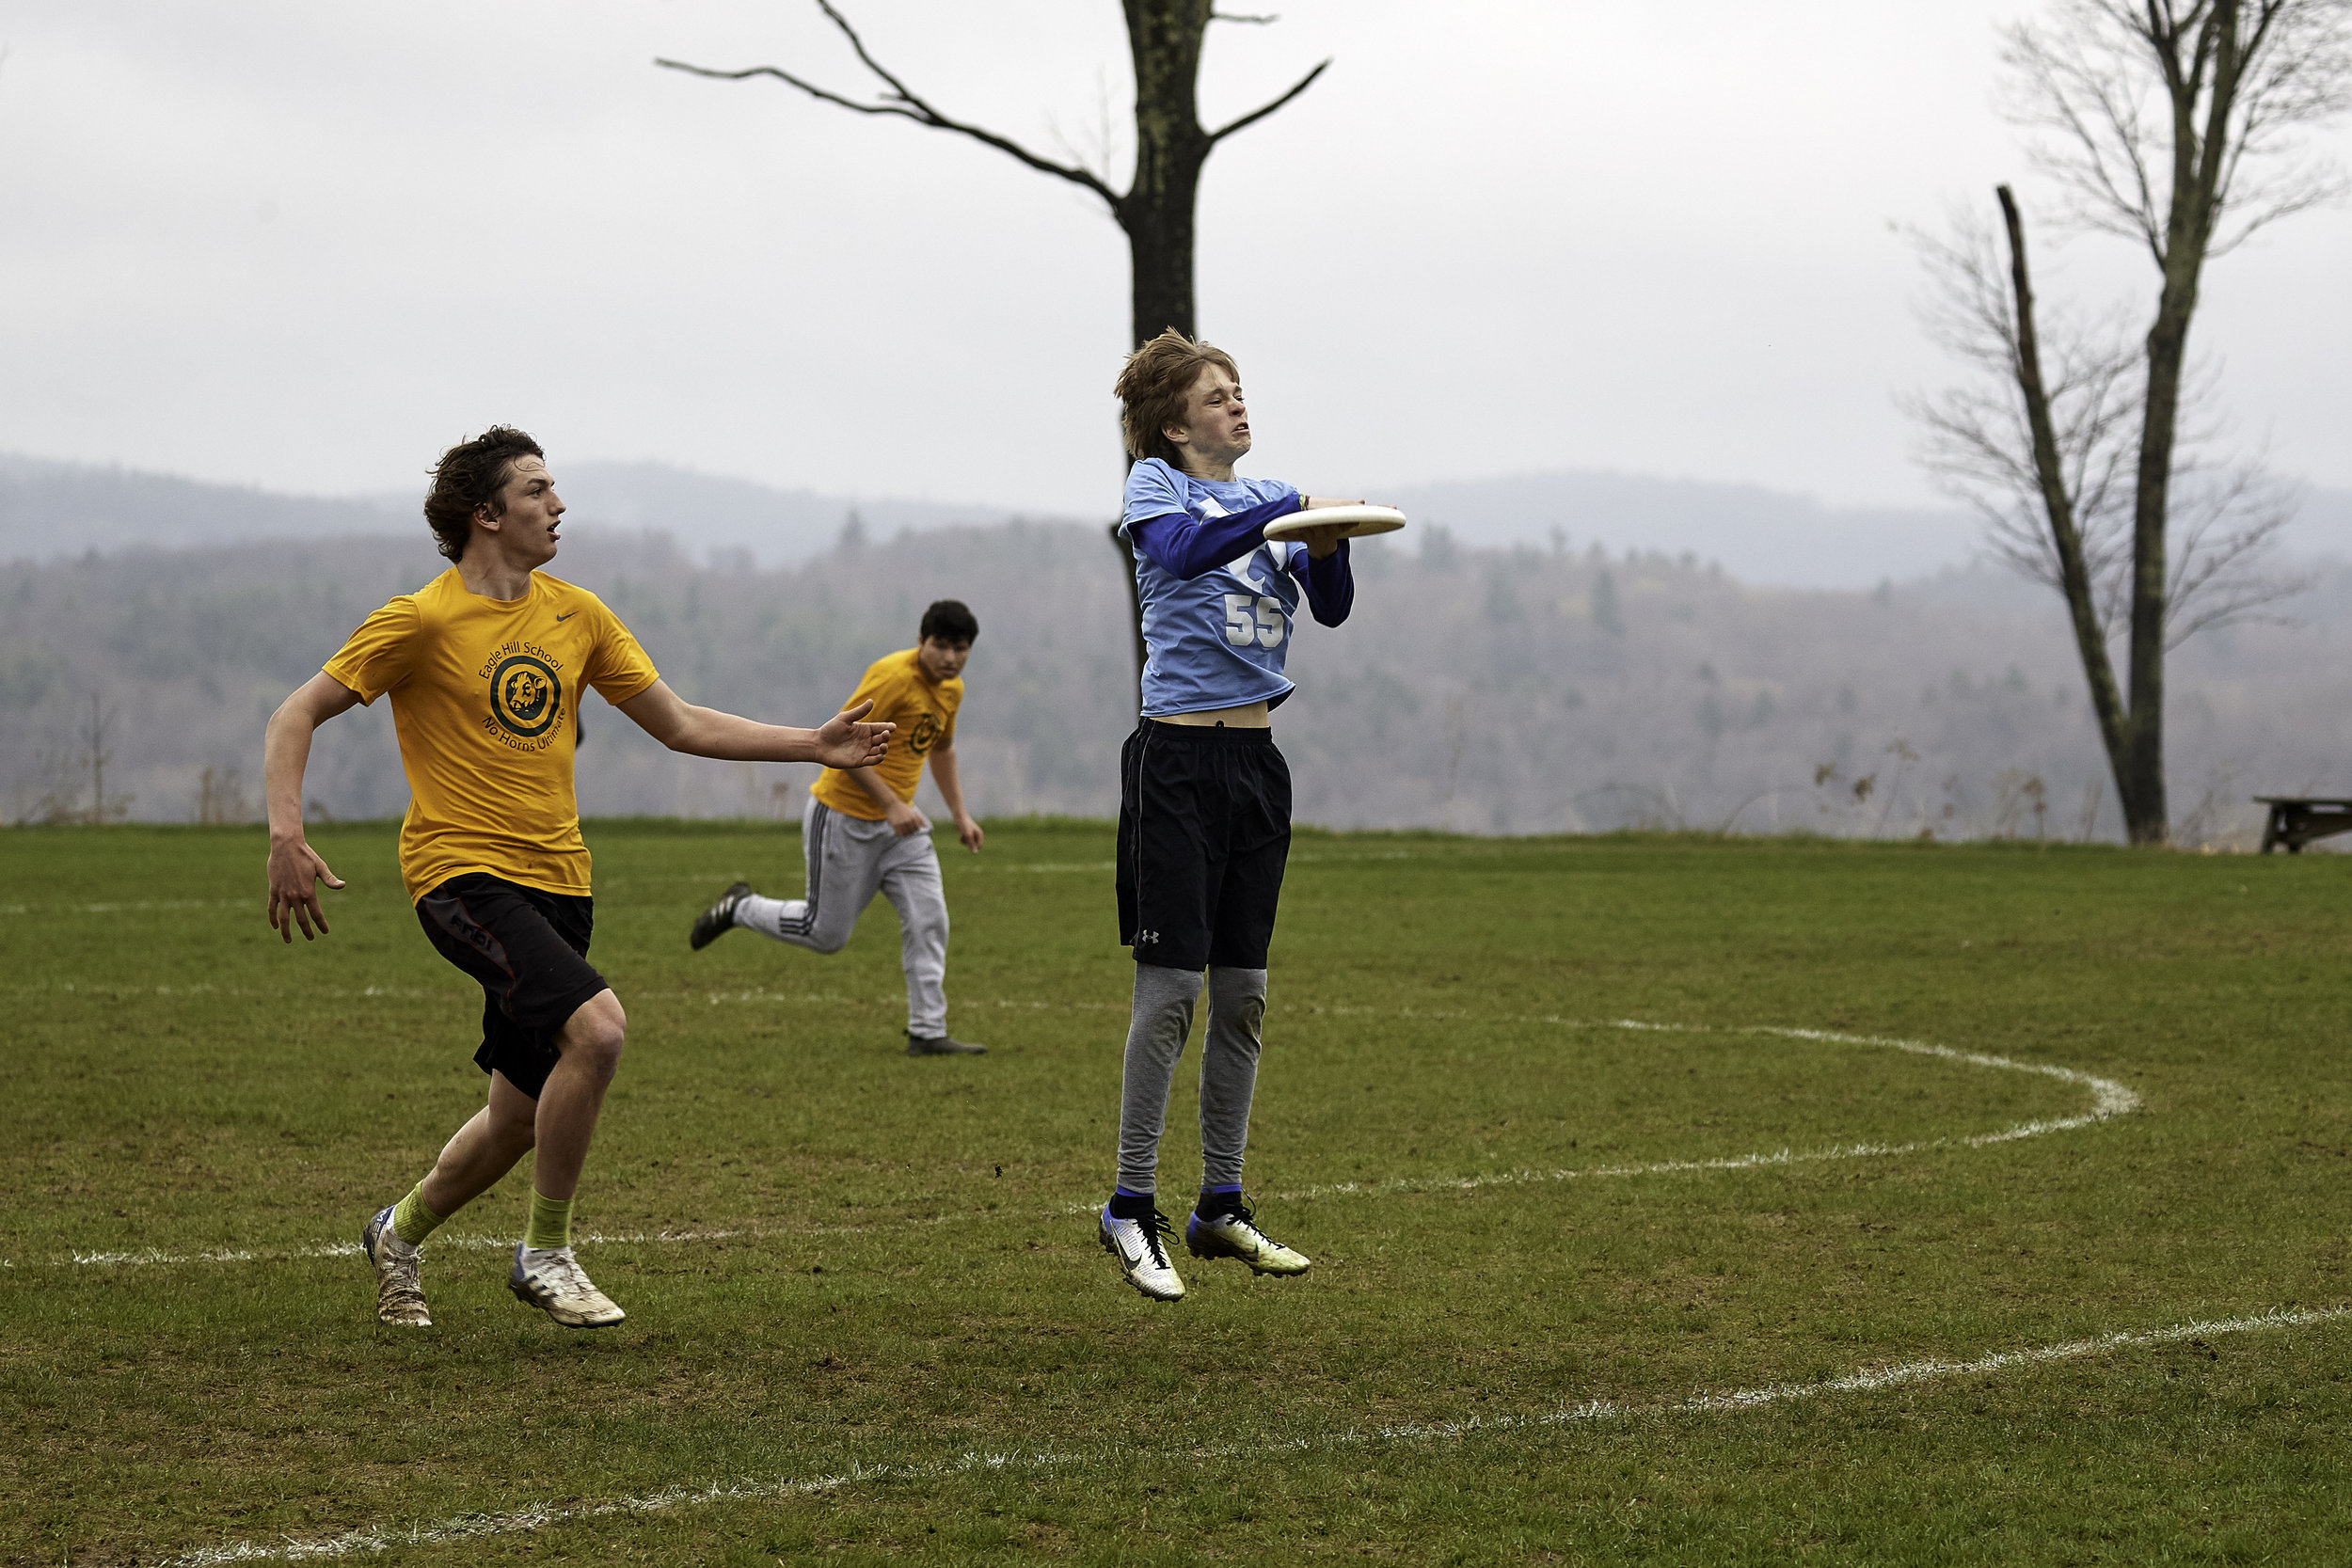 Ultimate Frisbee vs. Eagle Hill School - May 3, 2019 - 188637.jpg